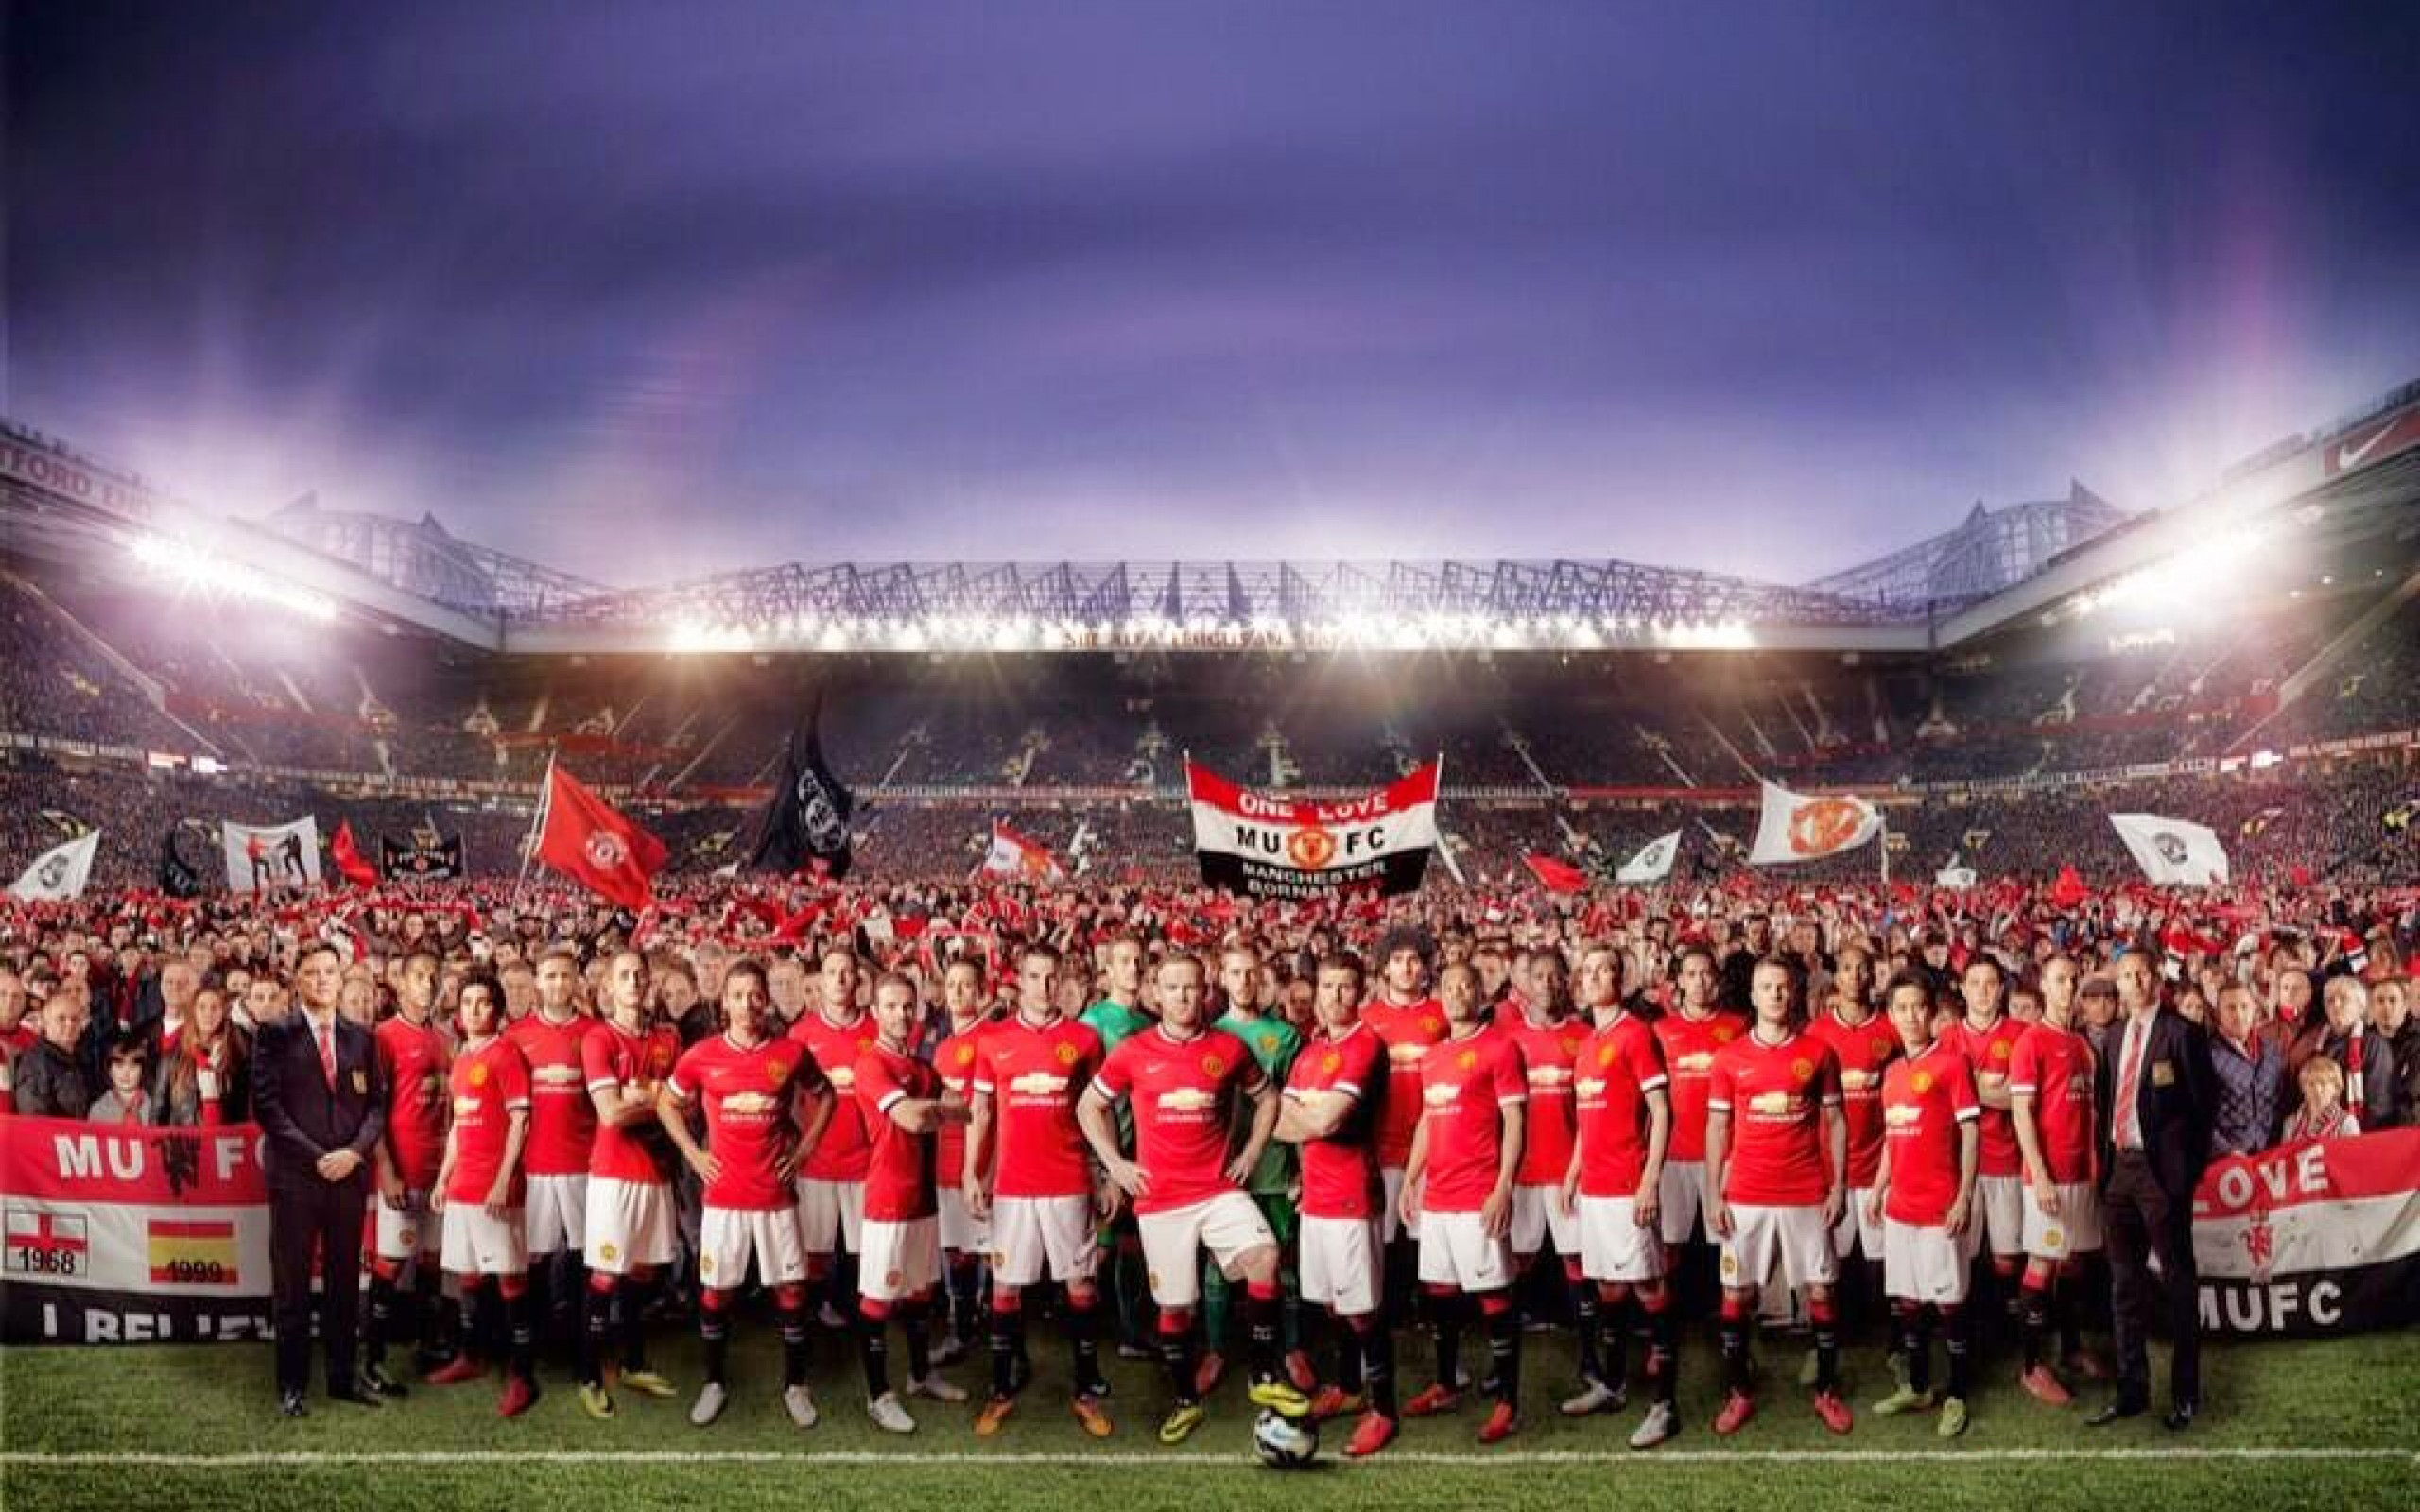 manchester united players wallpaper 2020 manchester united 20 21 home kit released debut tomorrow footy headlines netlify